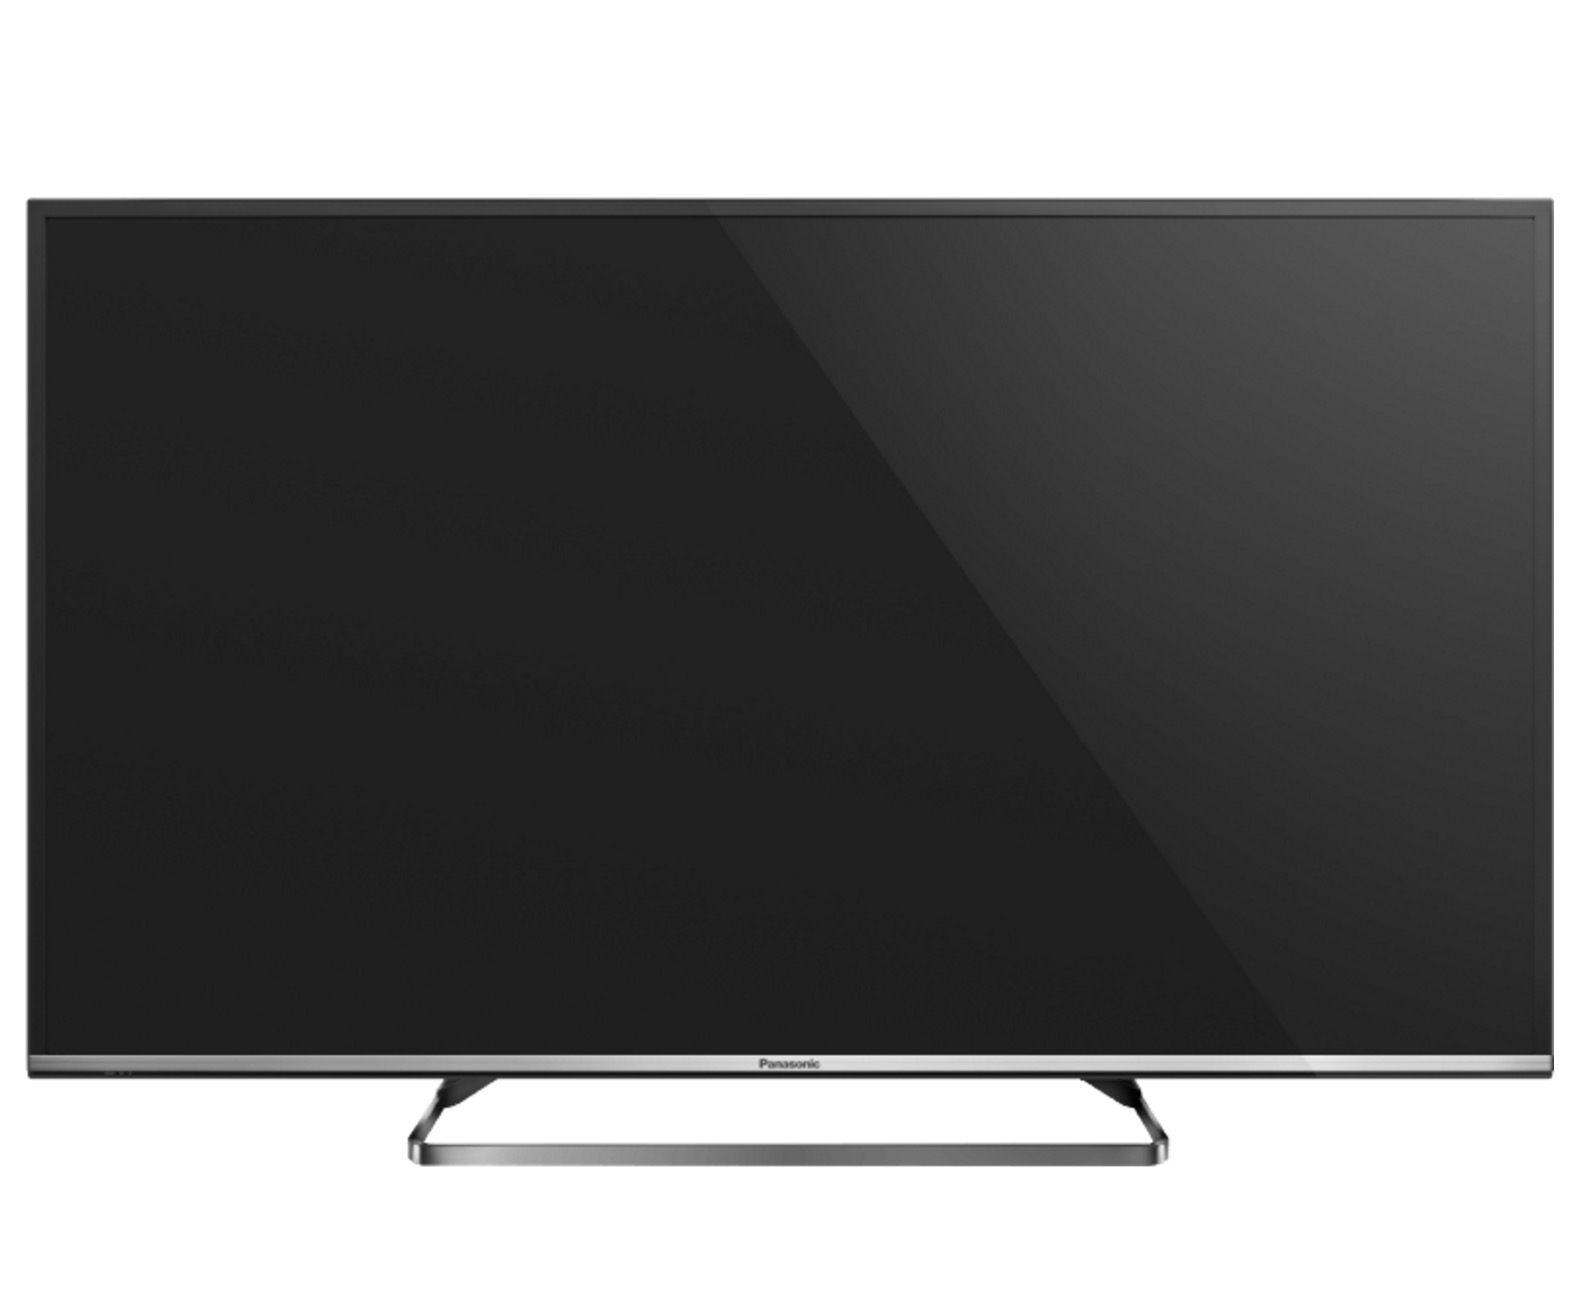 PANASONIC TX-40DSW504 40 Zoll Full-HD Smart LED TV